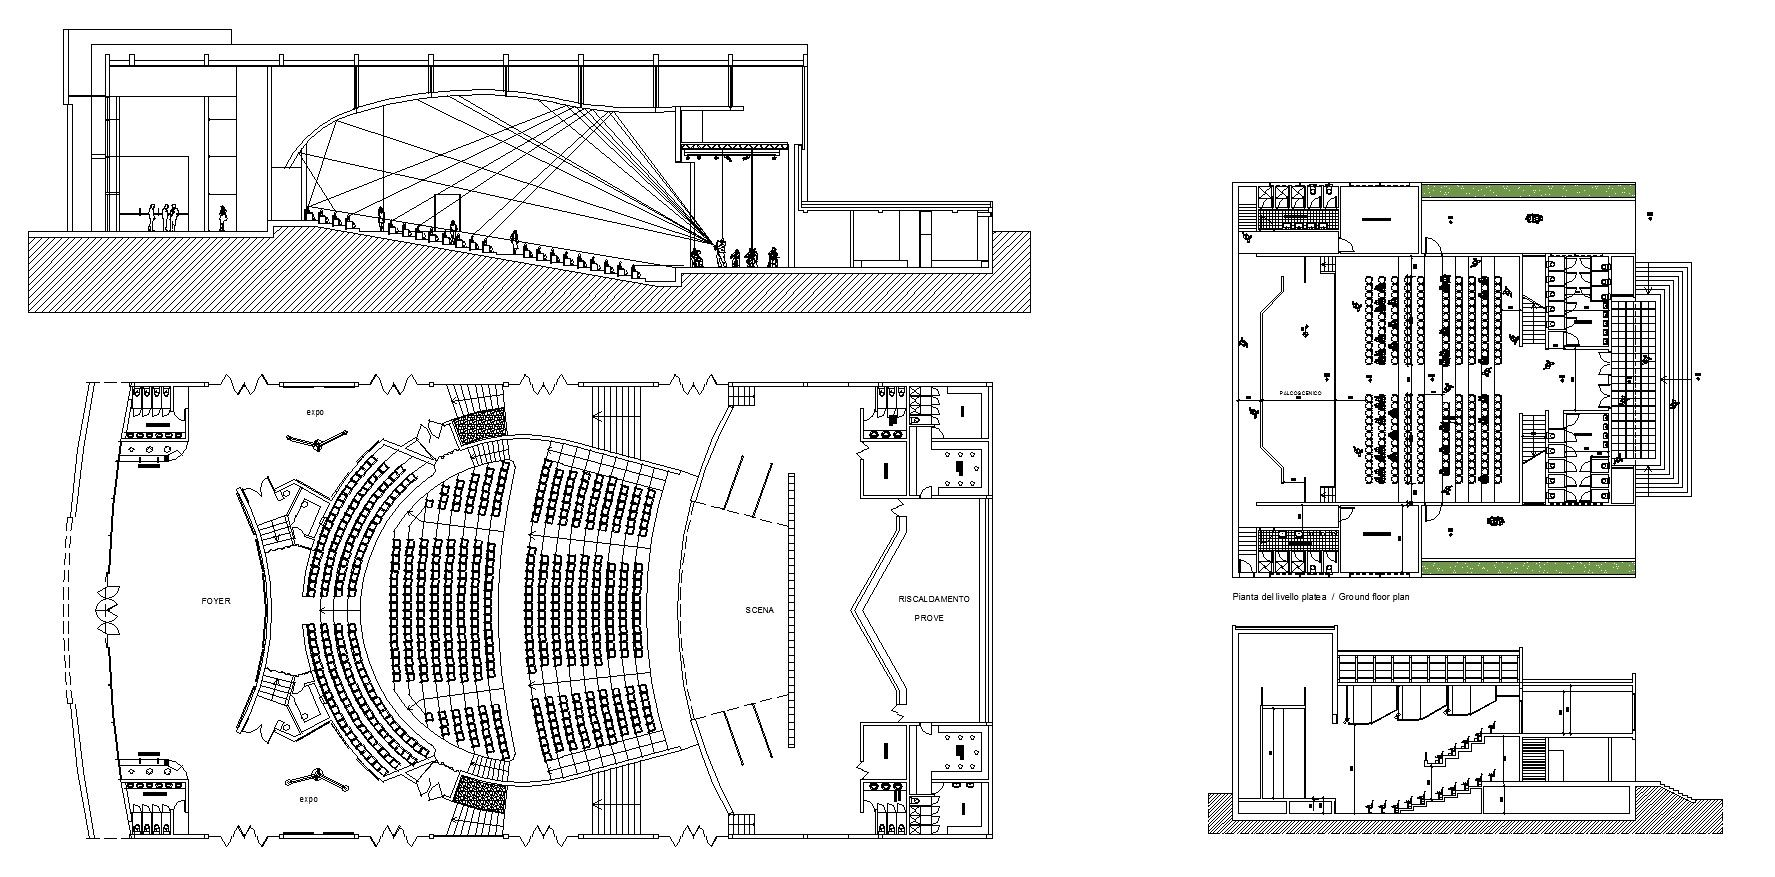 theater plans in   theatre  pinterest  auditorium design cad . theater plans – cad design  free cad blocksdrawingsdetails